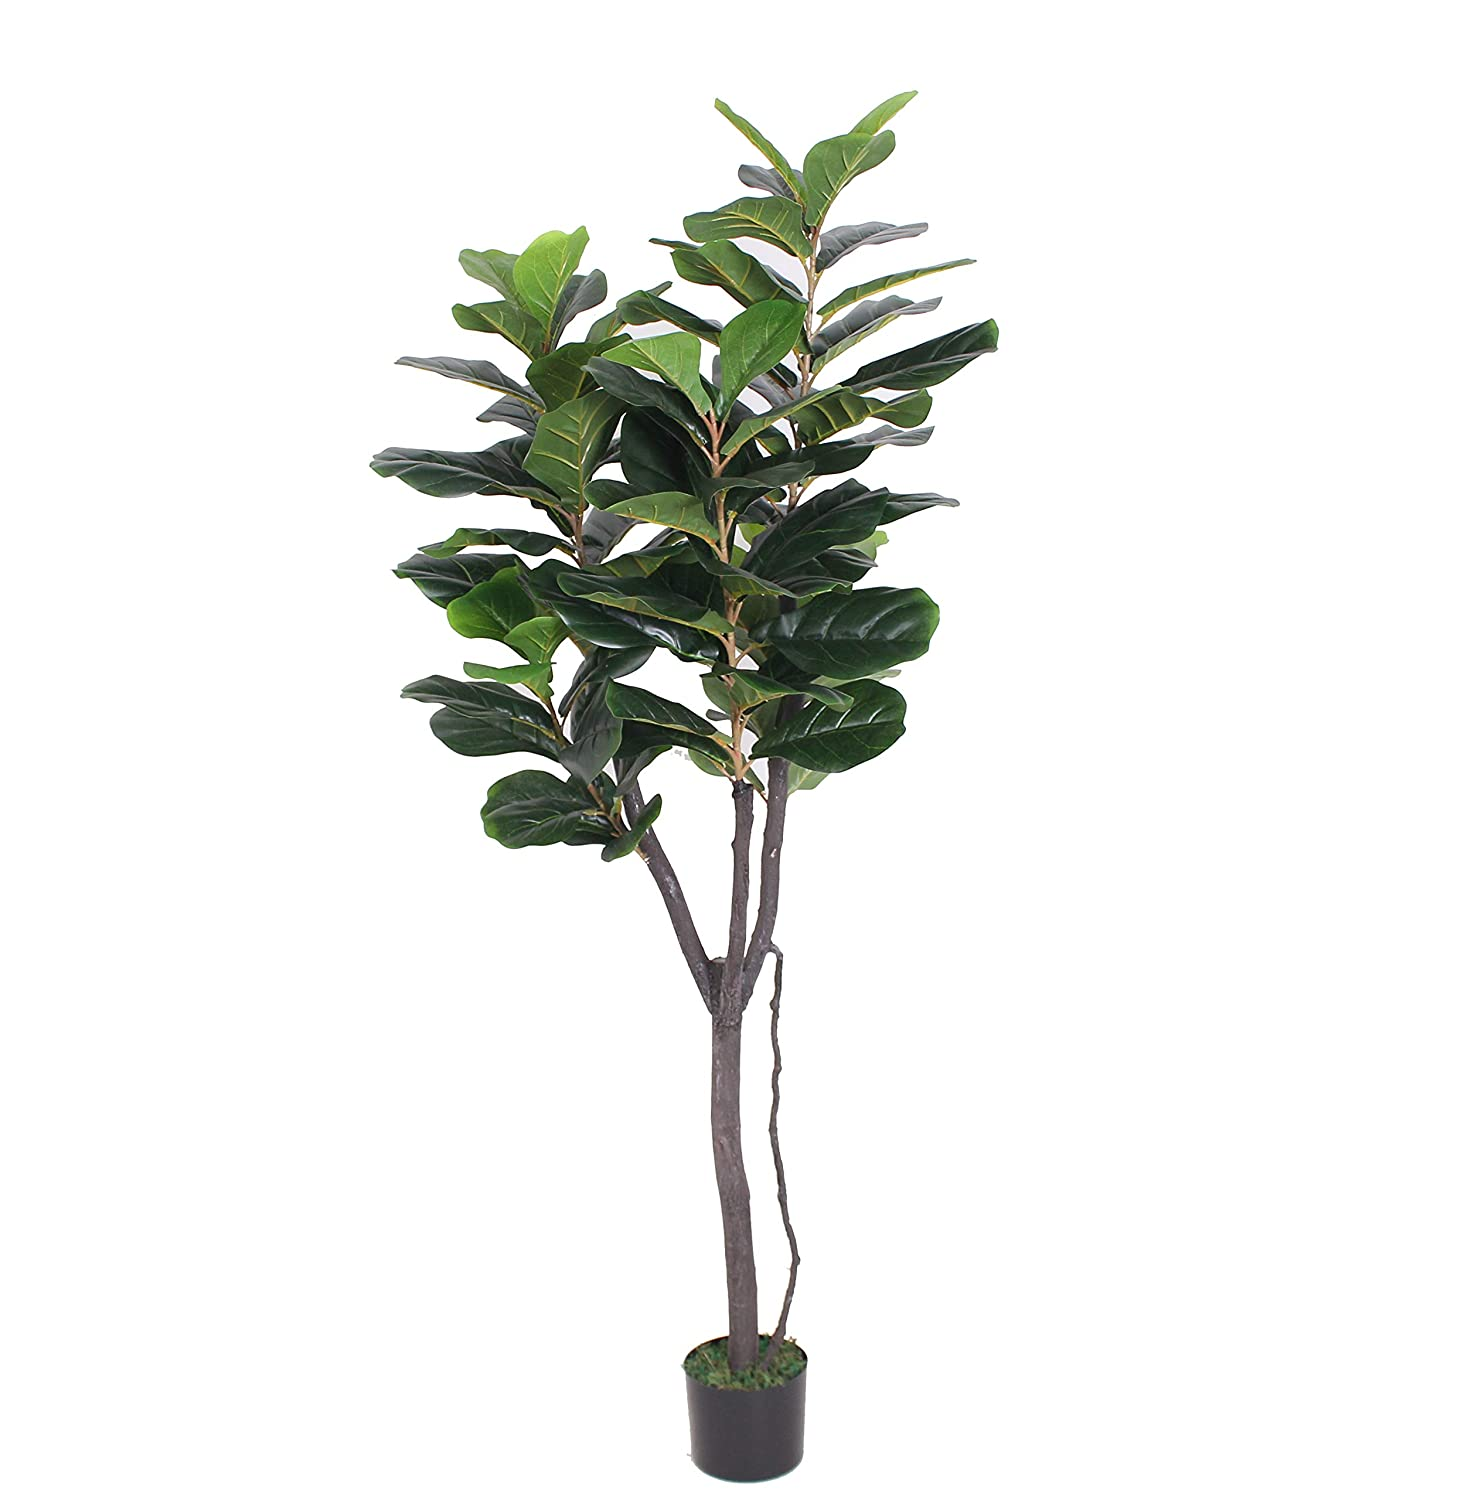 5 feet Super Quality Green AMERIQUE 28113 Gorgeous /& Dense 5 Fiddle Leaf Fig Tree Artificial Silk Plant with UV Protection with Nursery Plastic Pot Feel Real Technology